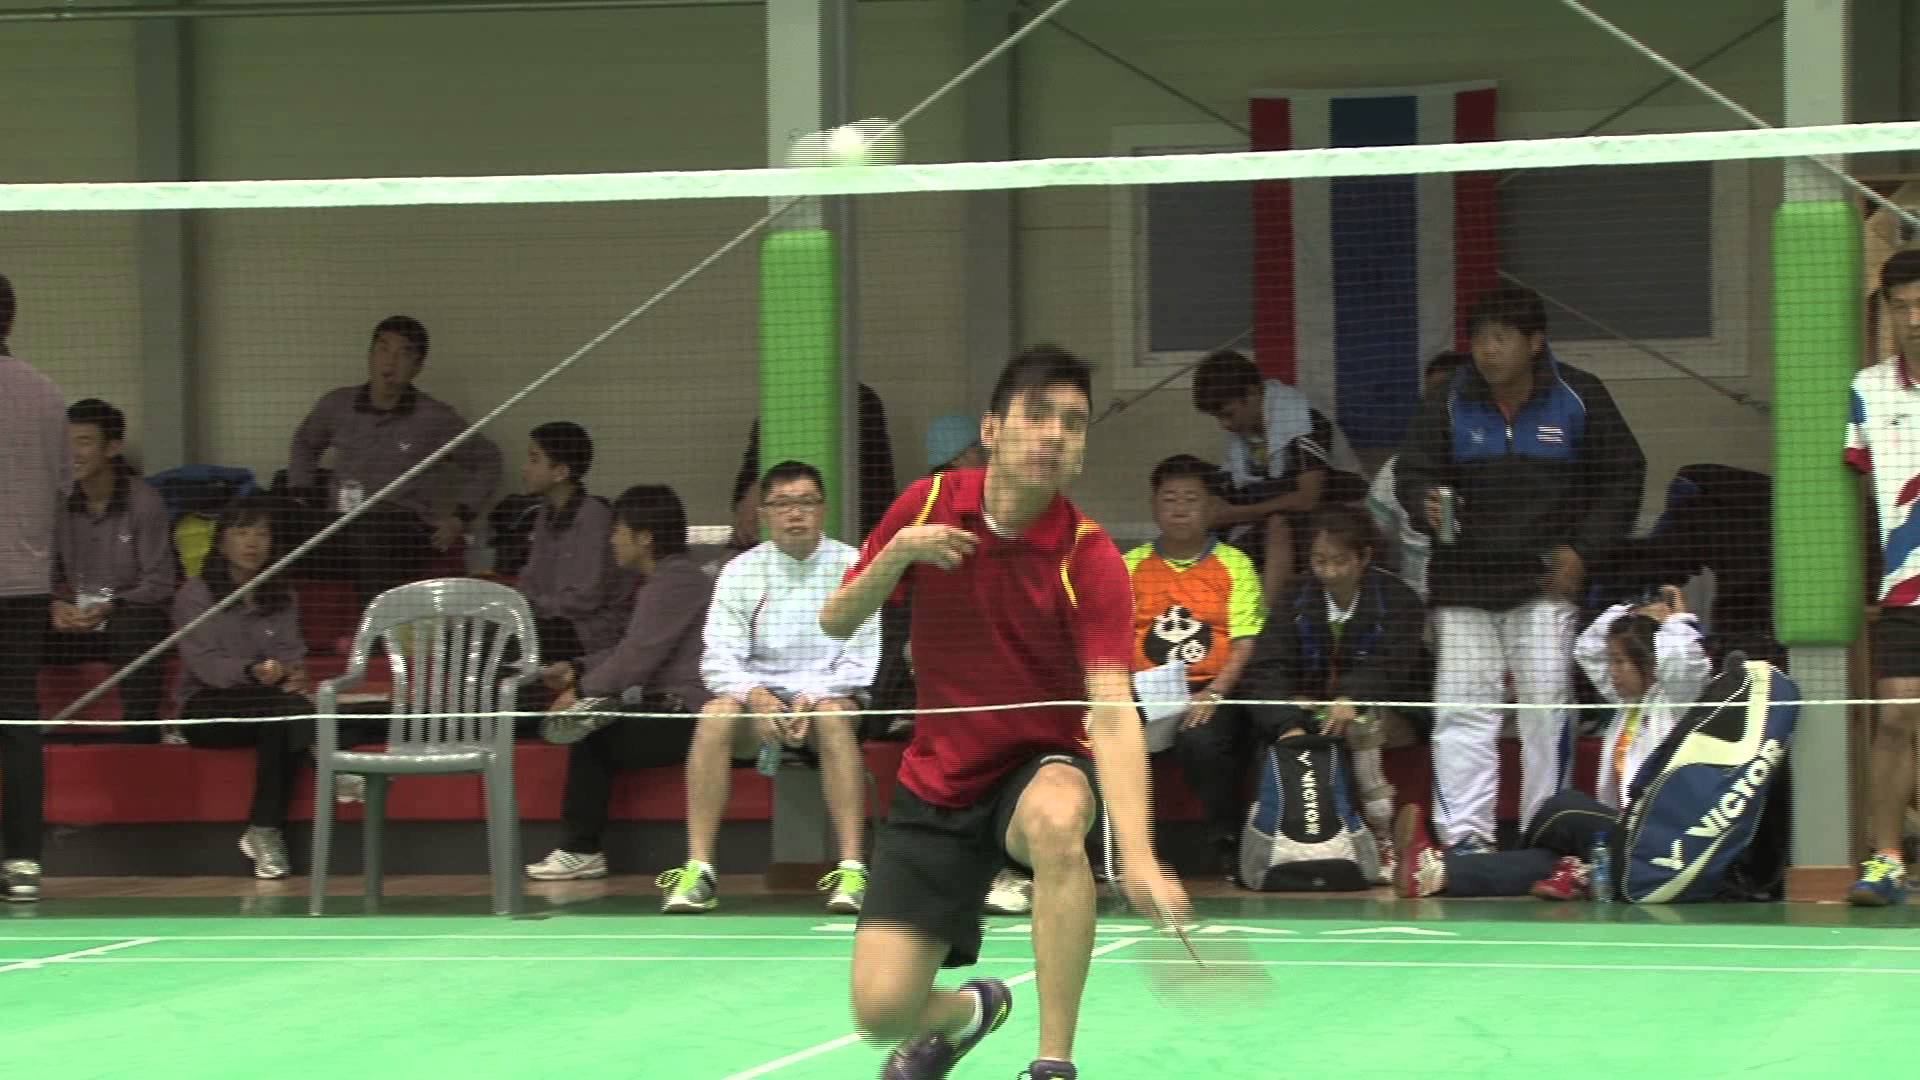 Singapore's Tay Wei Ming claims that he has been inspired by Para-badminton ©YouTube